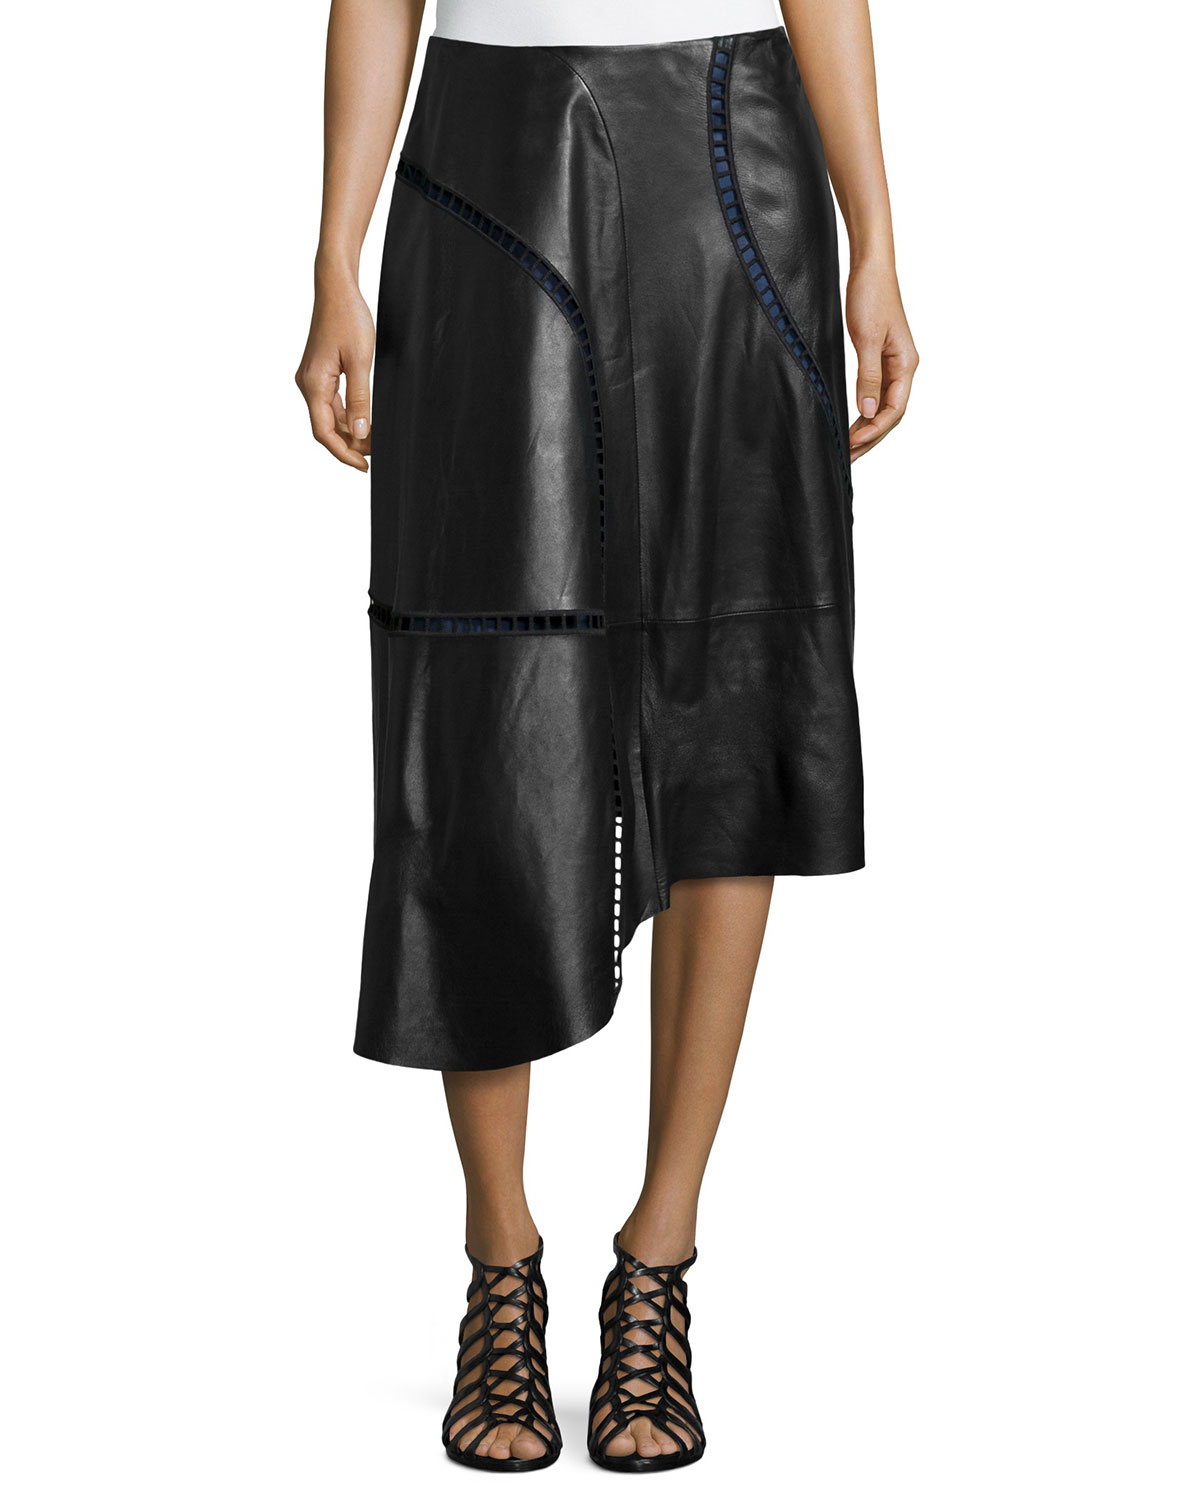 tibi eska cutout trim leather skirt in black lyst